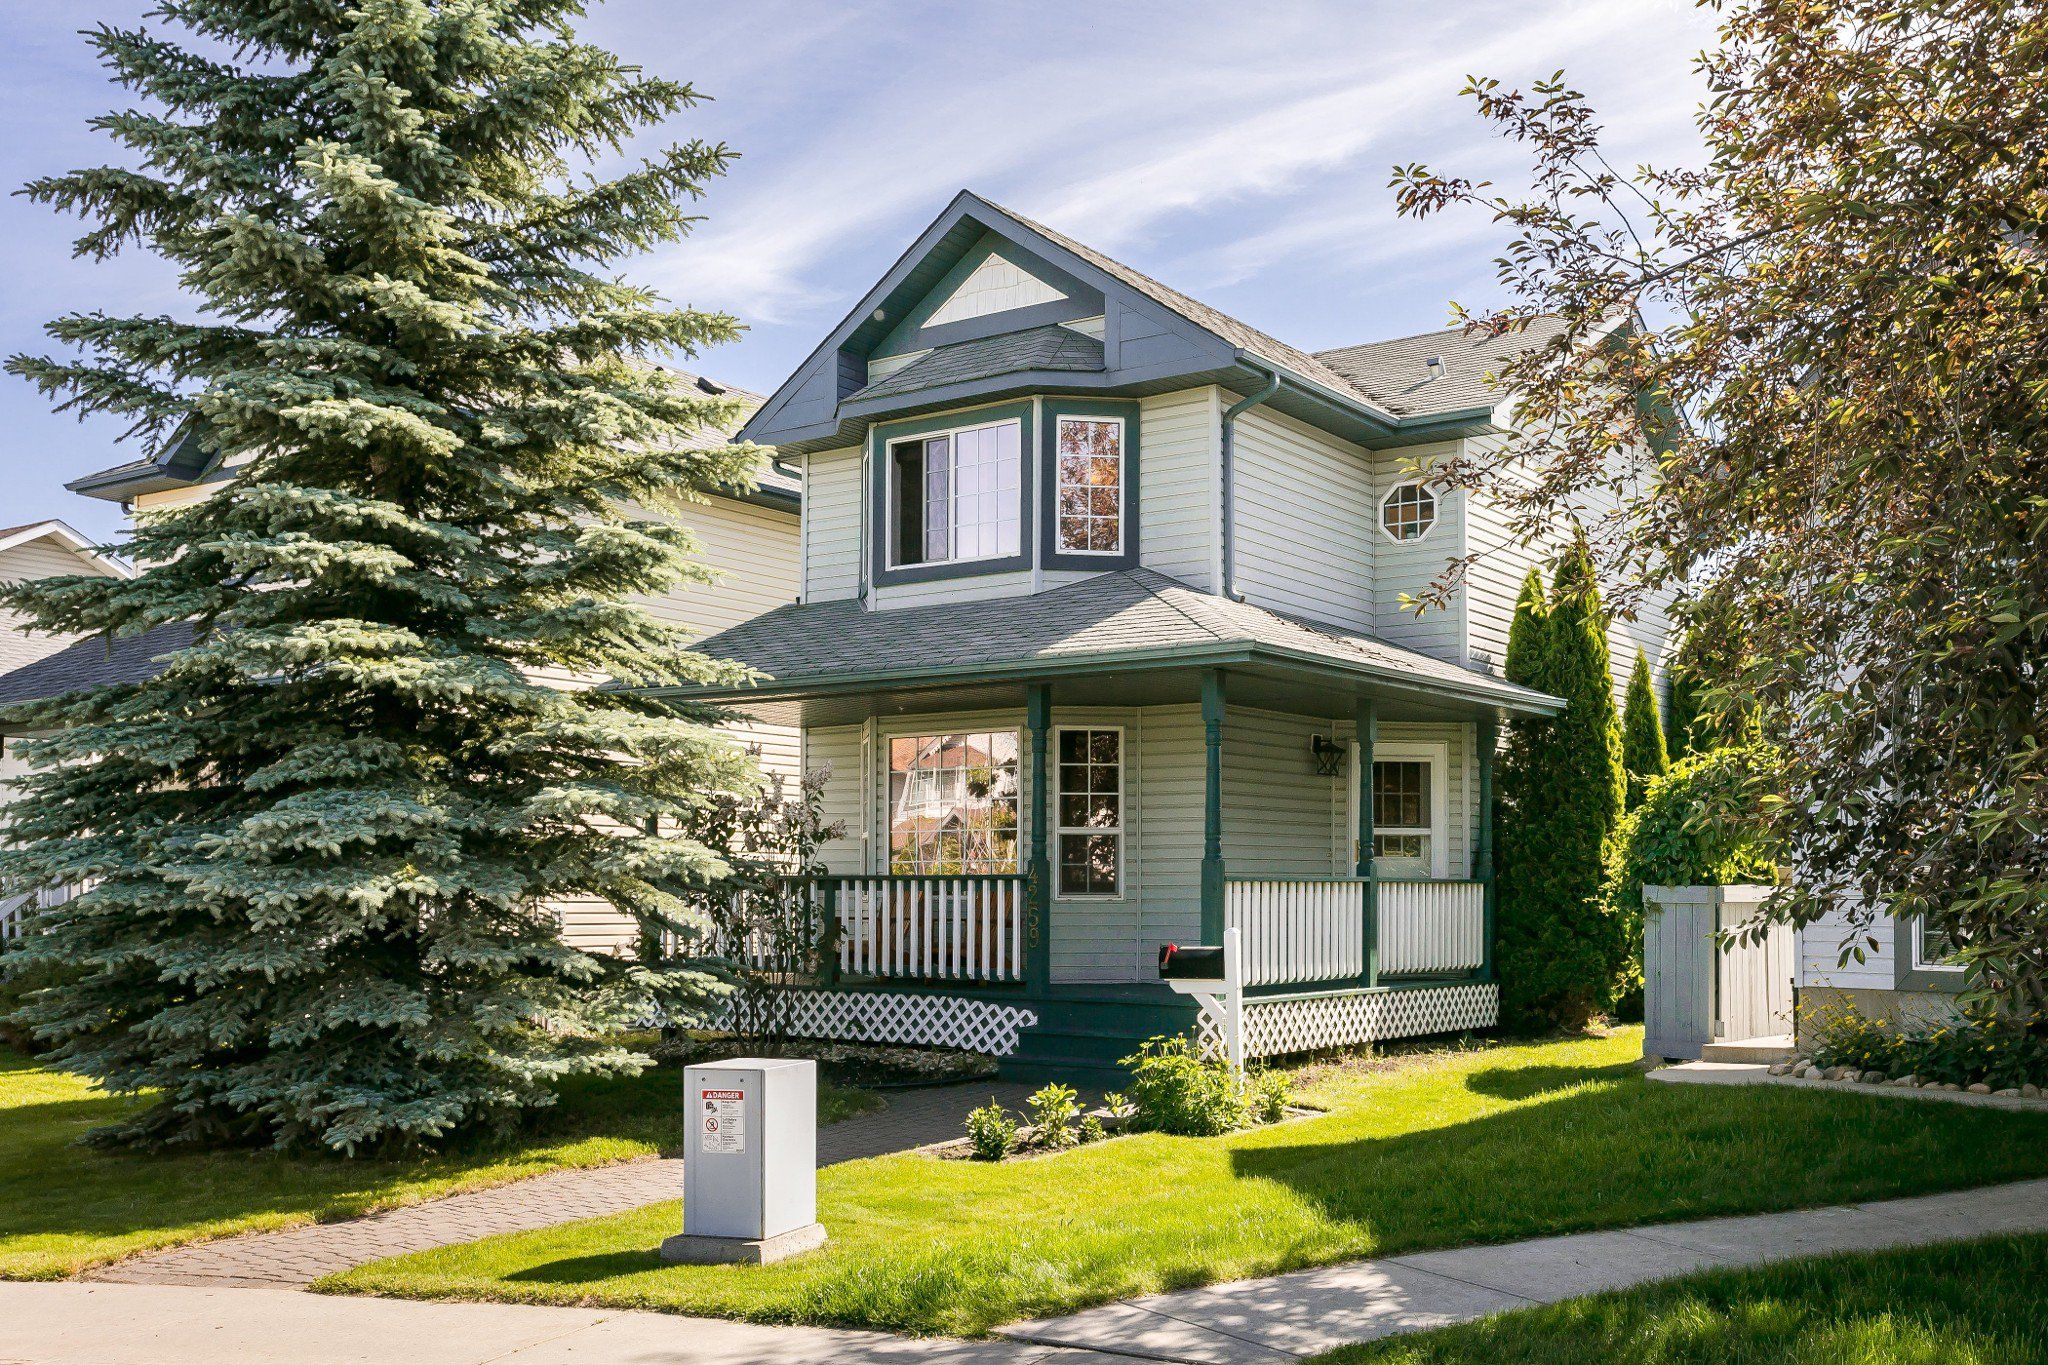 Main Photo: 4259 23St in Edmonton: Larkspur House for sale : MLS®# E4203591